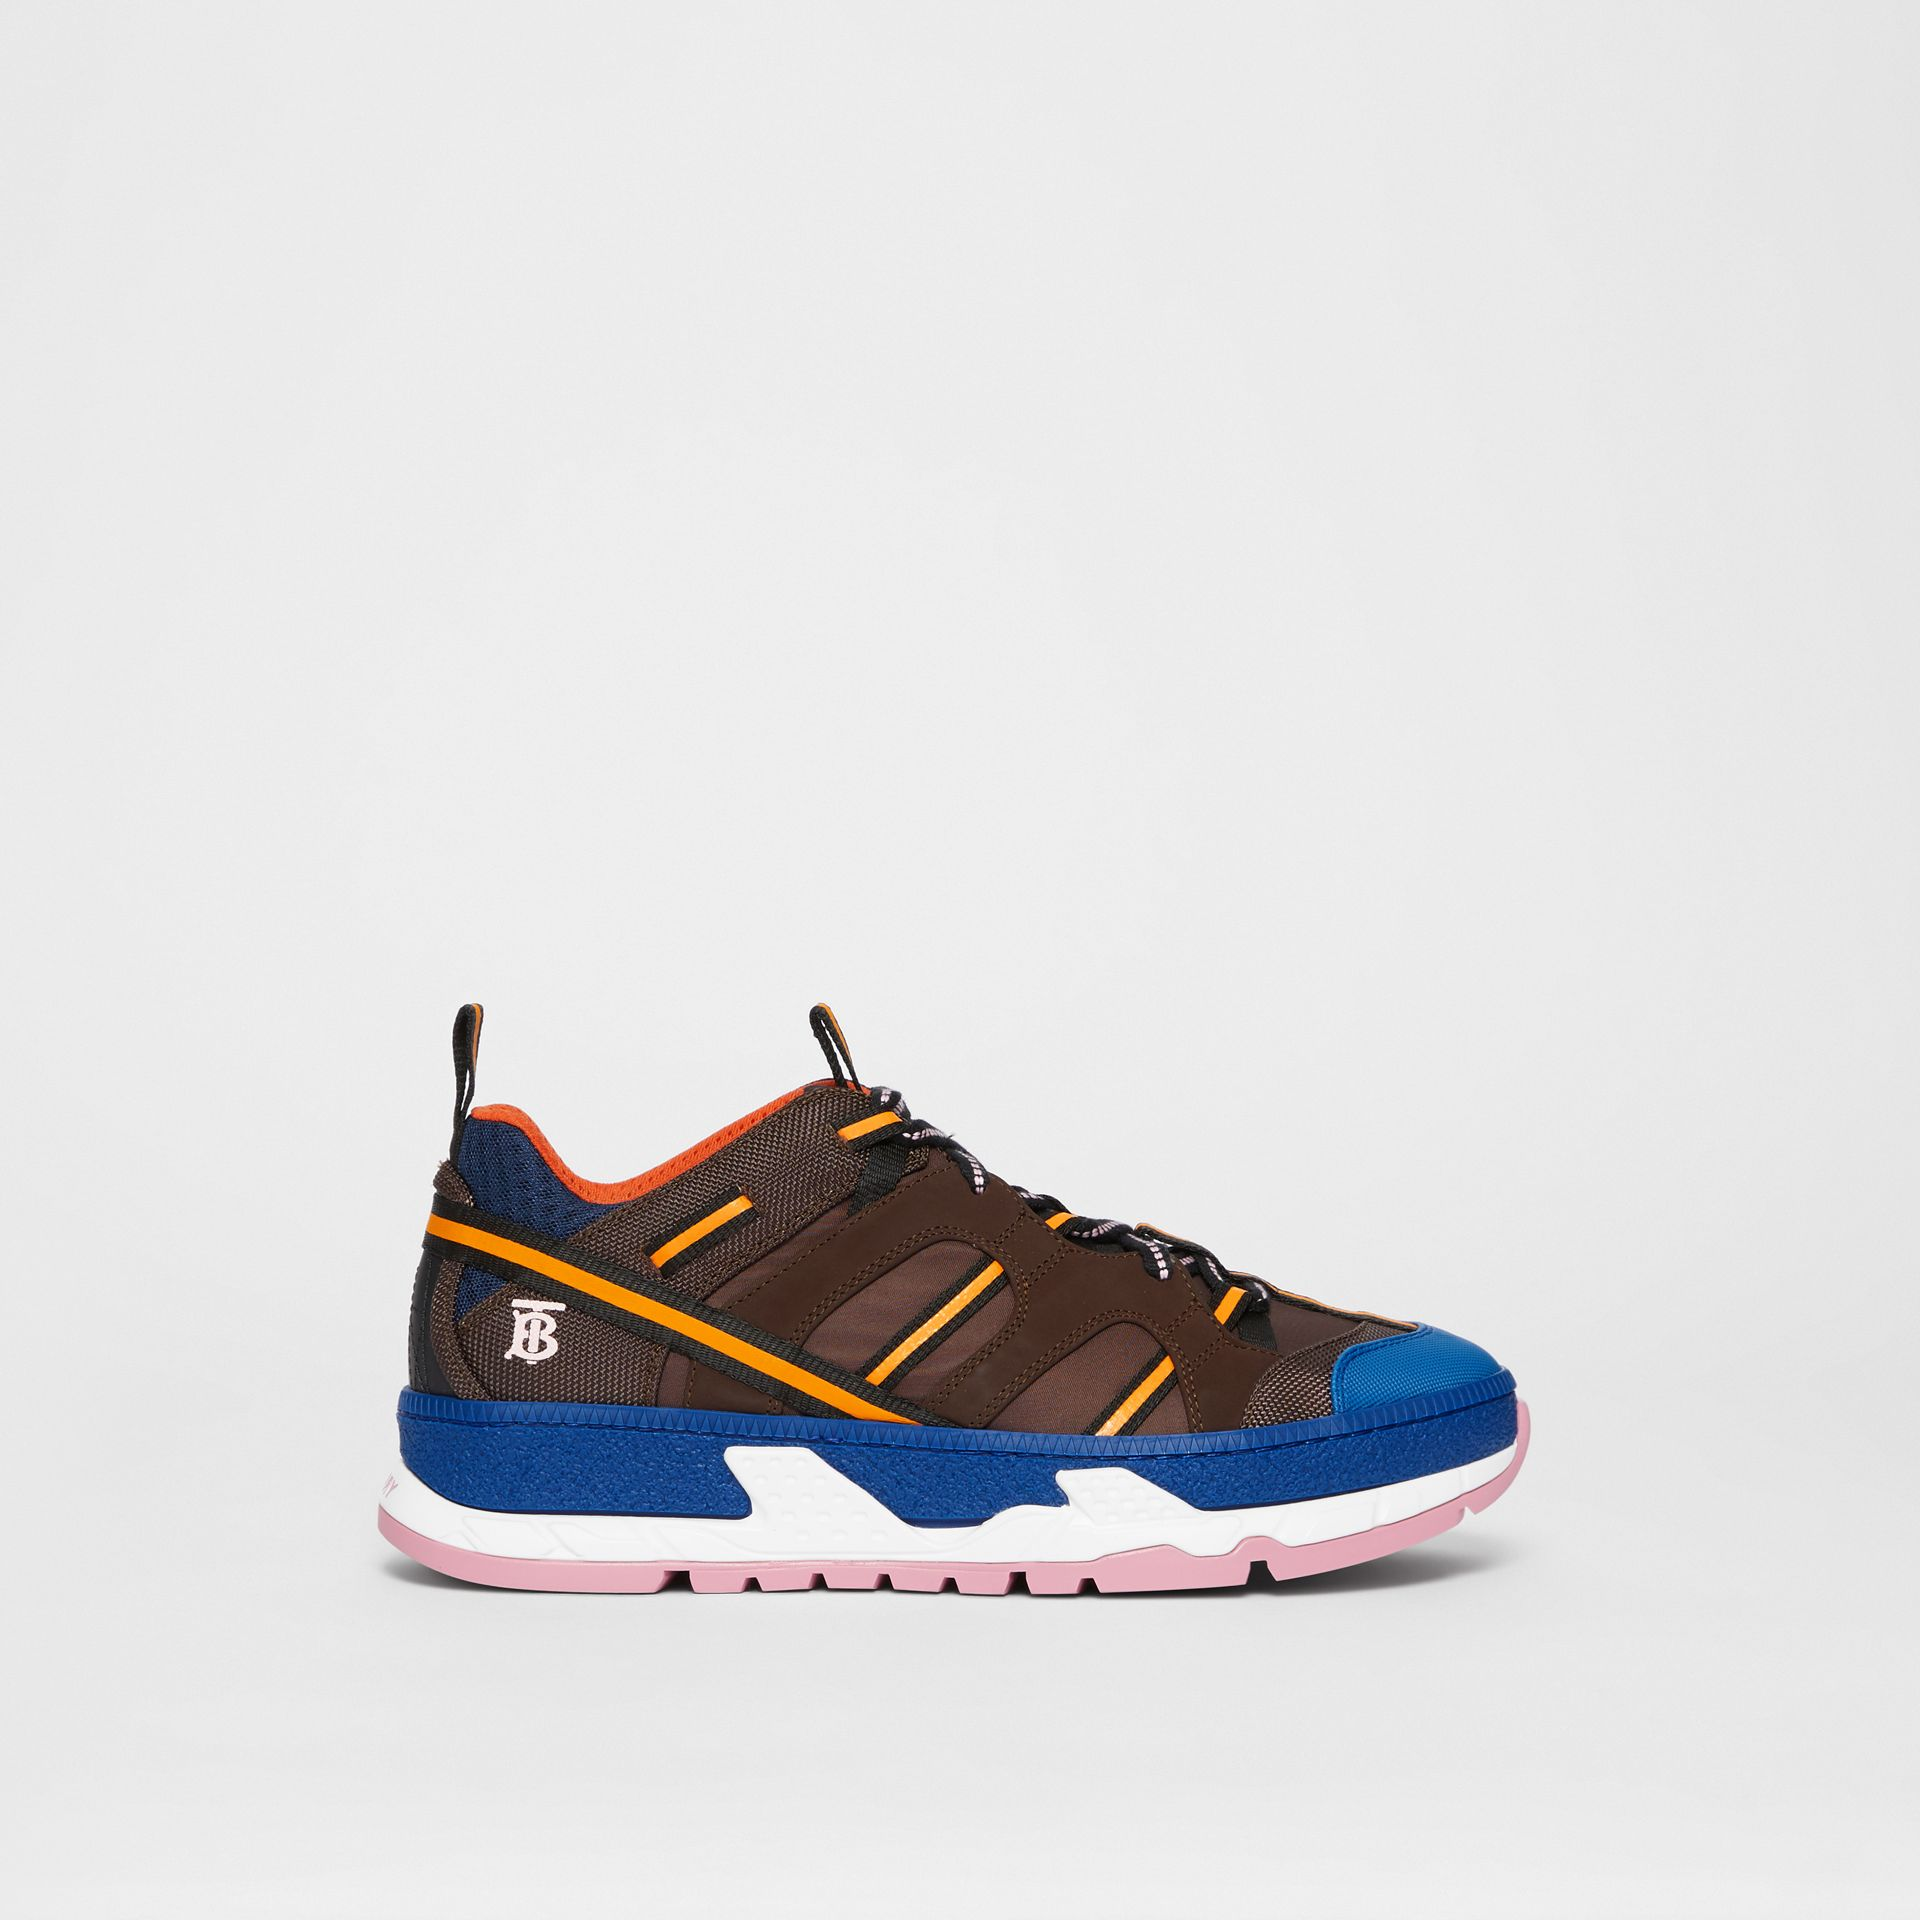 Nylon and Mesh Union Sneakers in Coffee/blue - Men | Burberry United States - gallery image 5